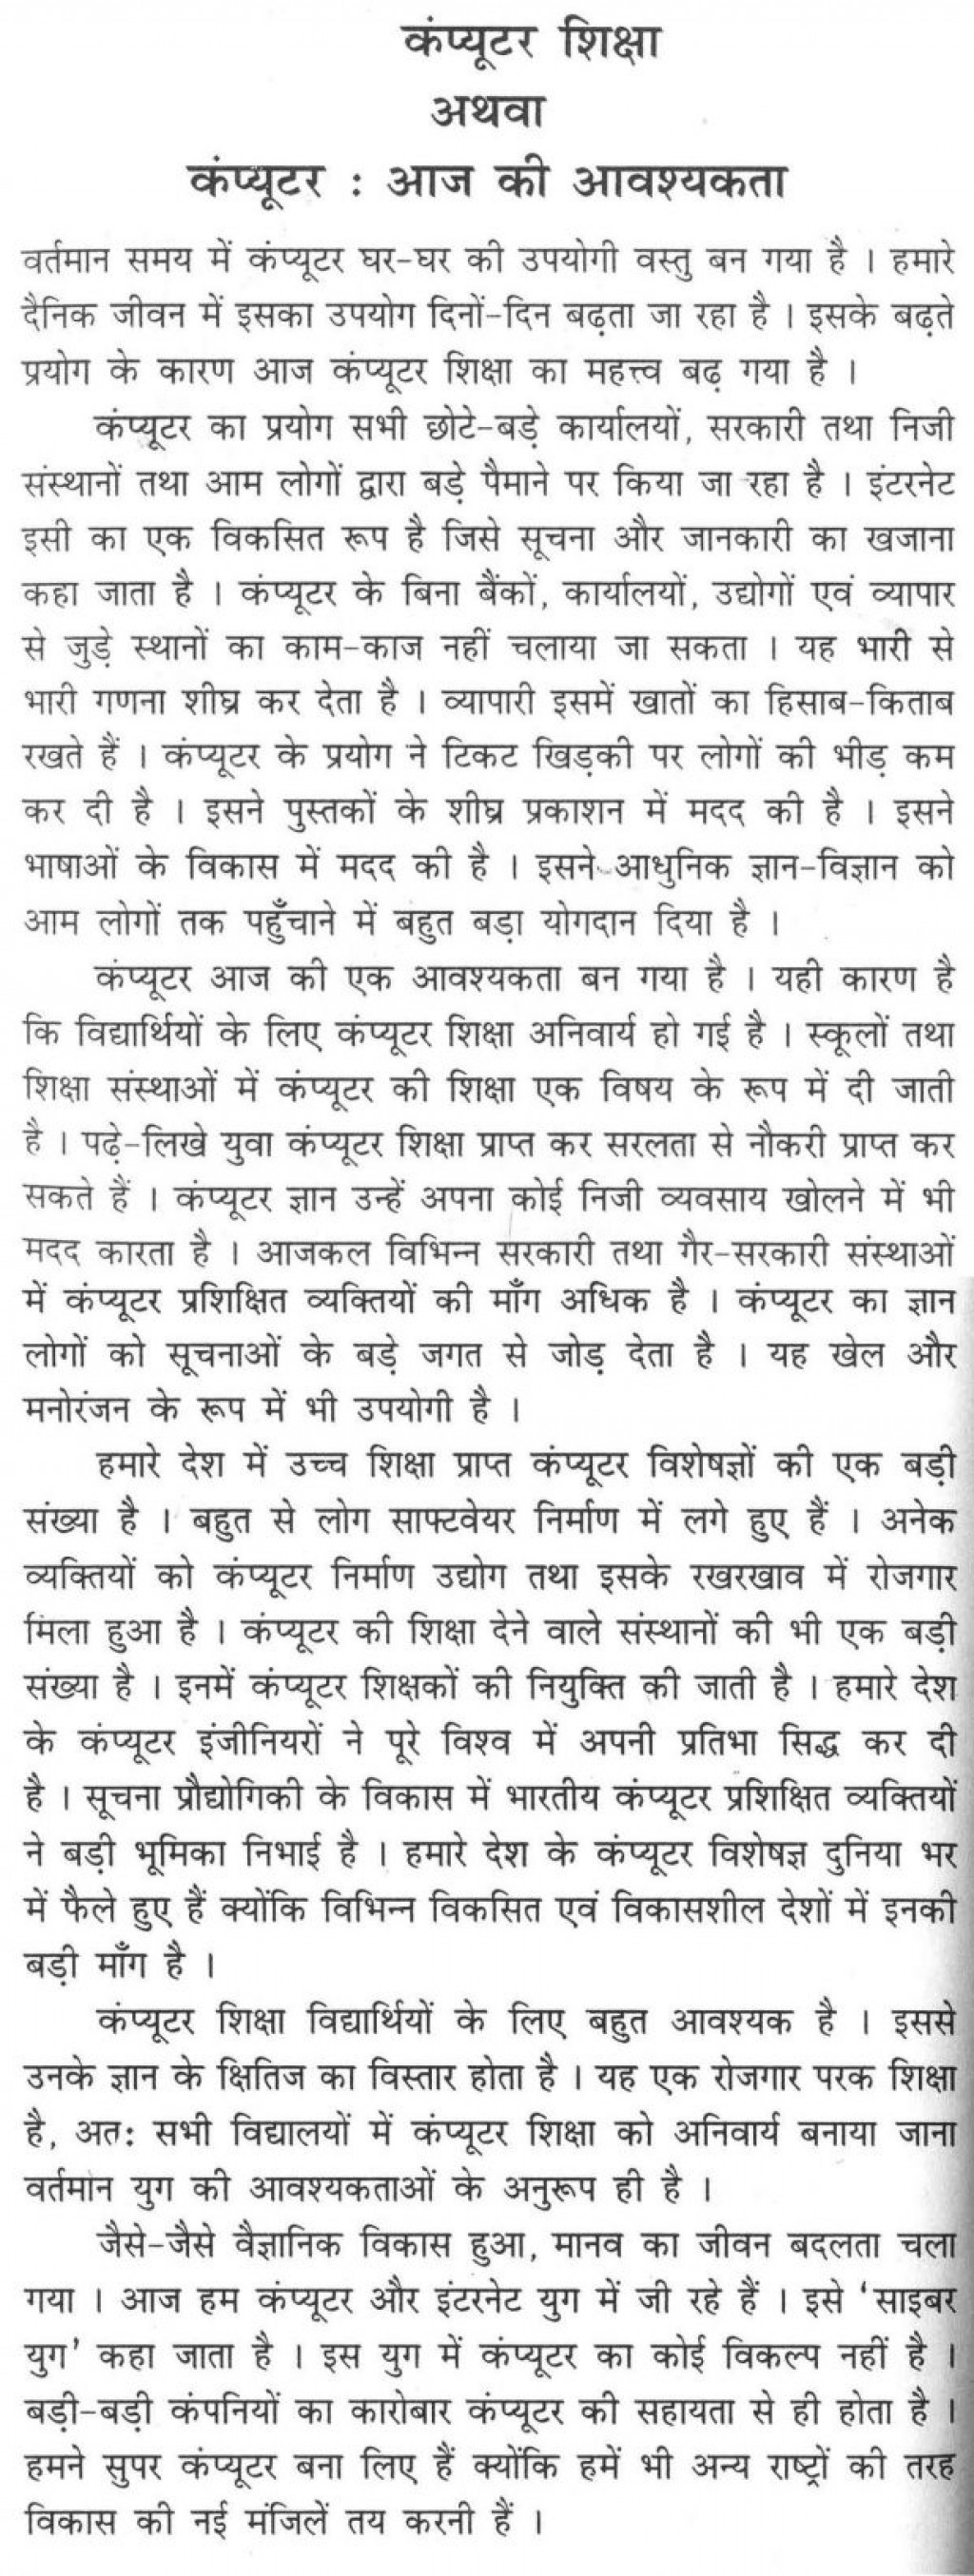 012 Essay Computer Technology Thumb Argumentative On Good Or In Hindi Education Boon Short Topics Latest Urdu Science And 618x1635 Fearsome Security Privacy Skills College Large